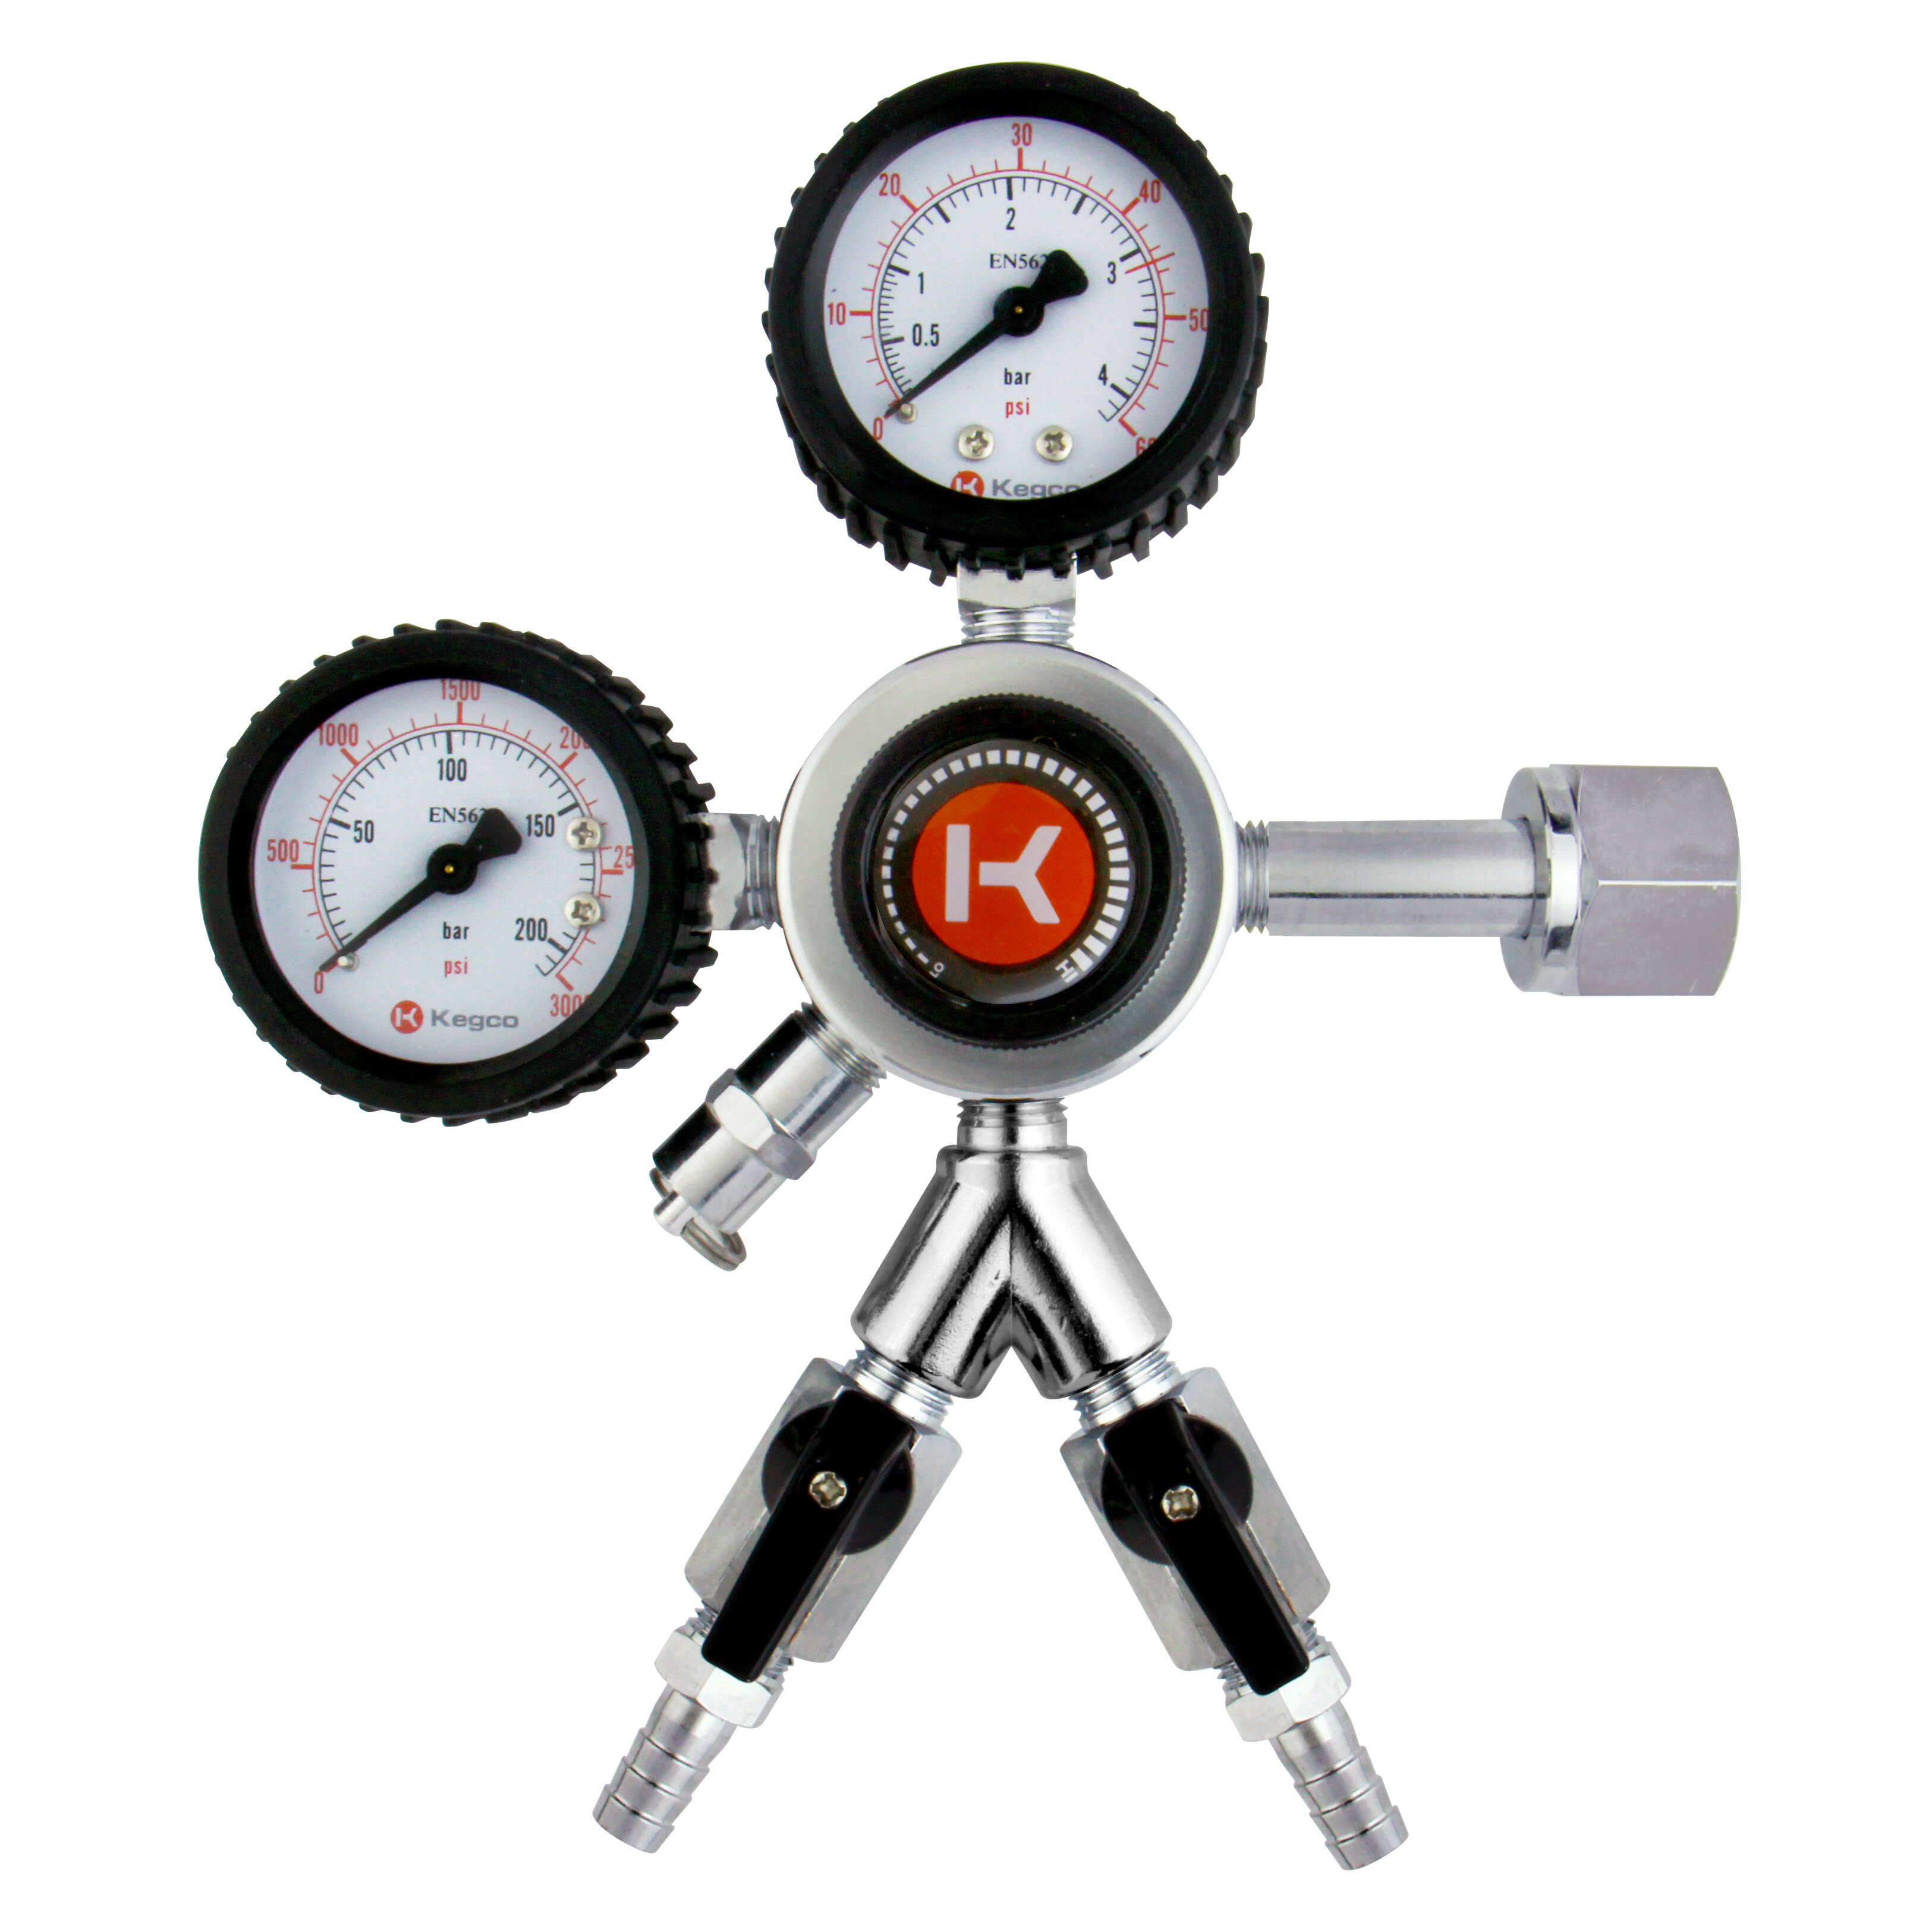 Kegco Two Product Dual Tap Full Size Kegerator